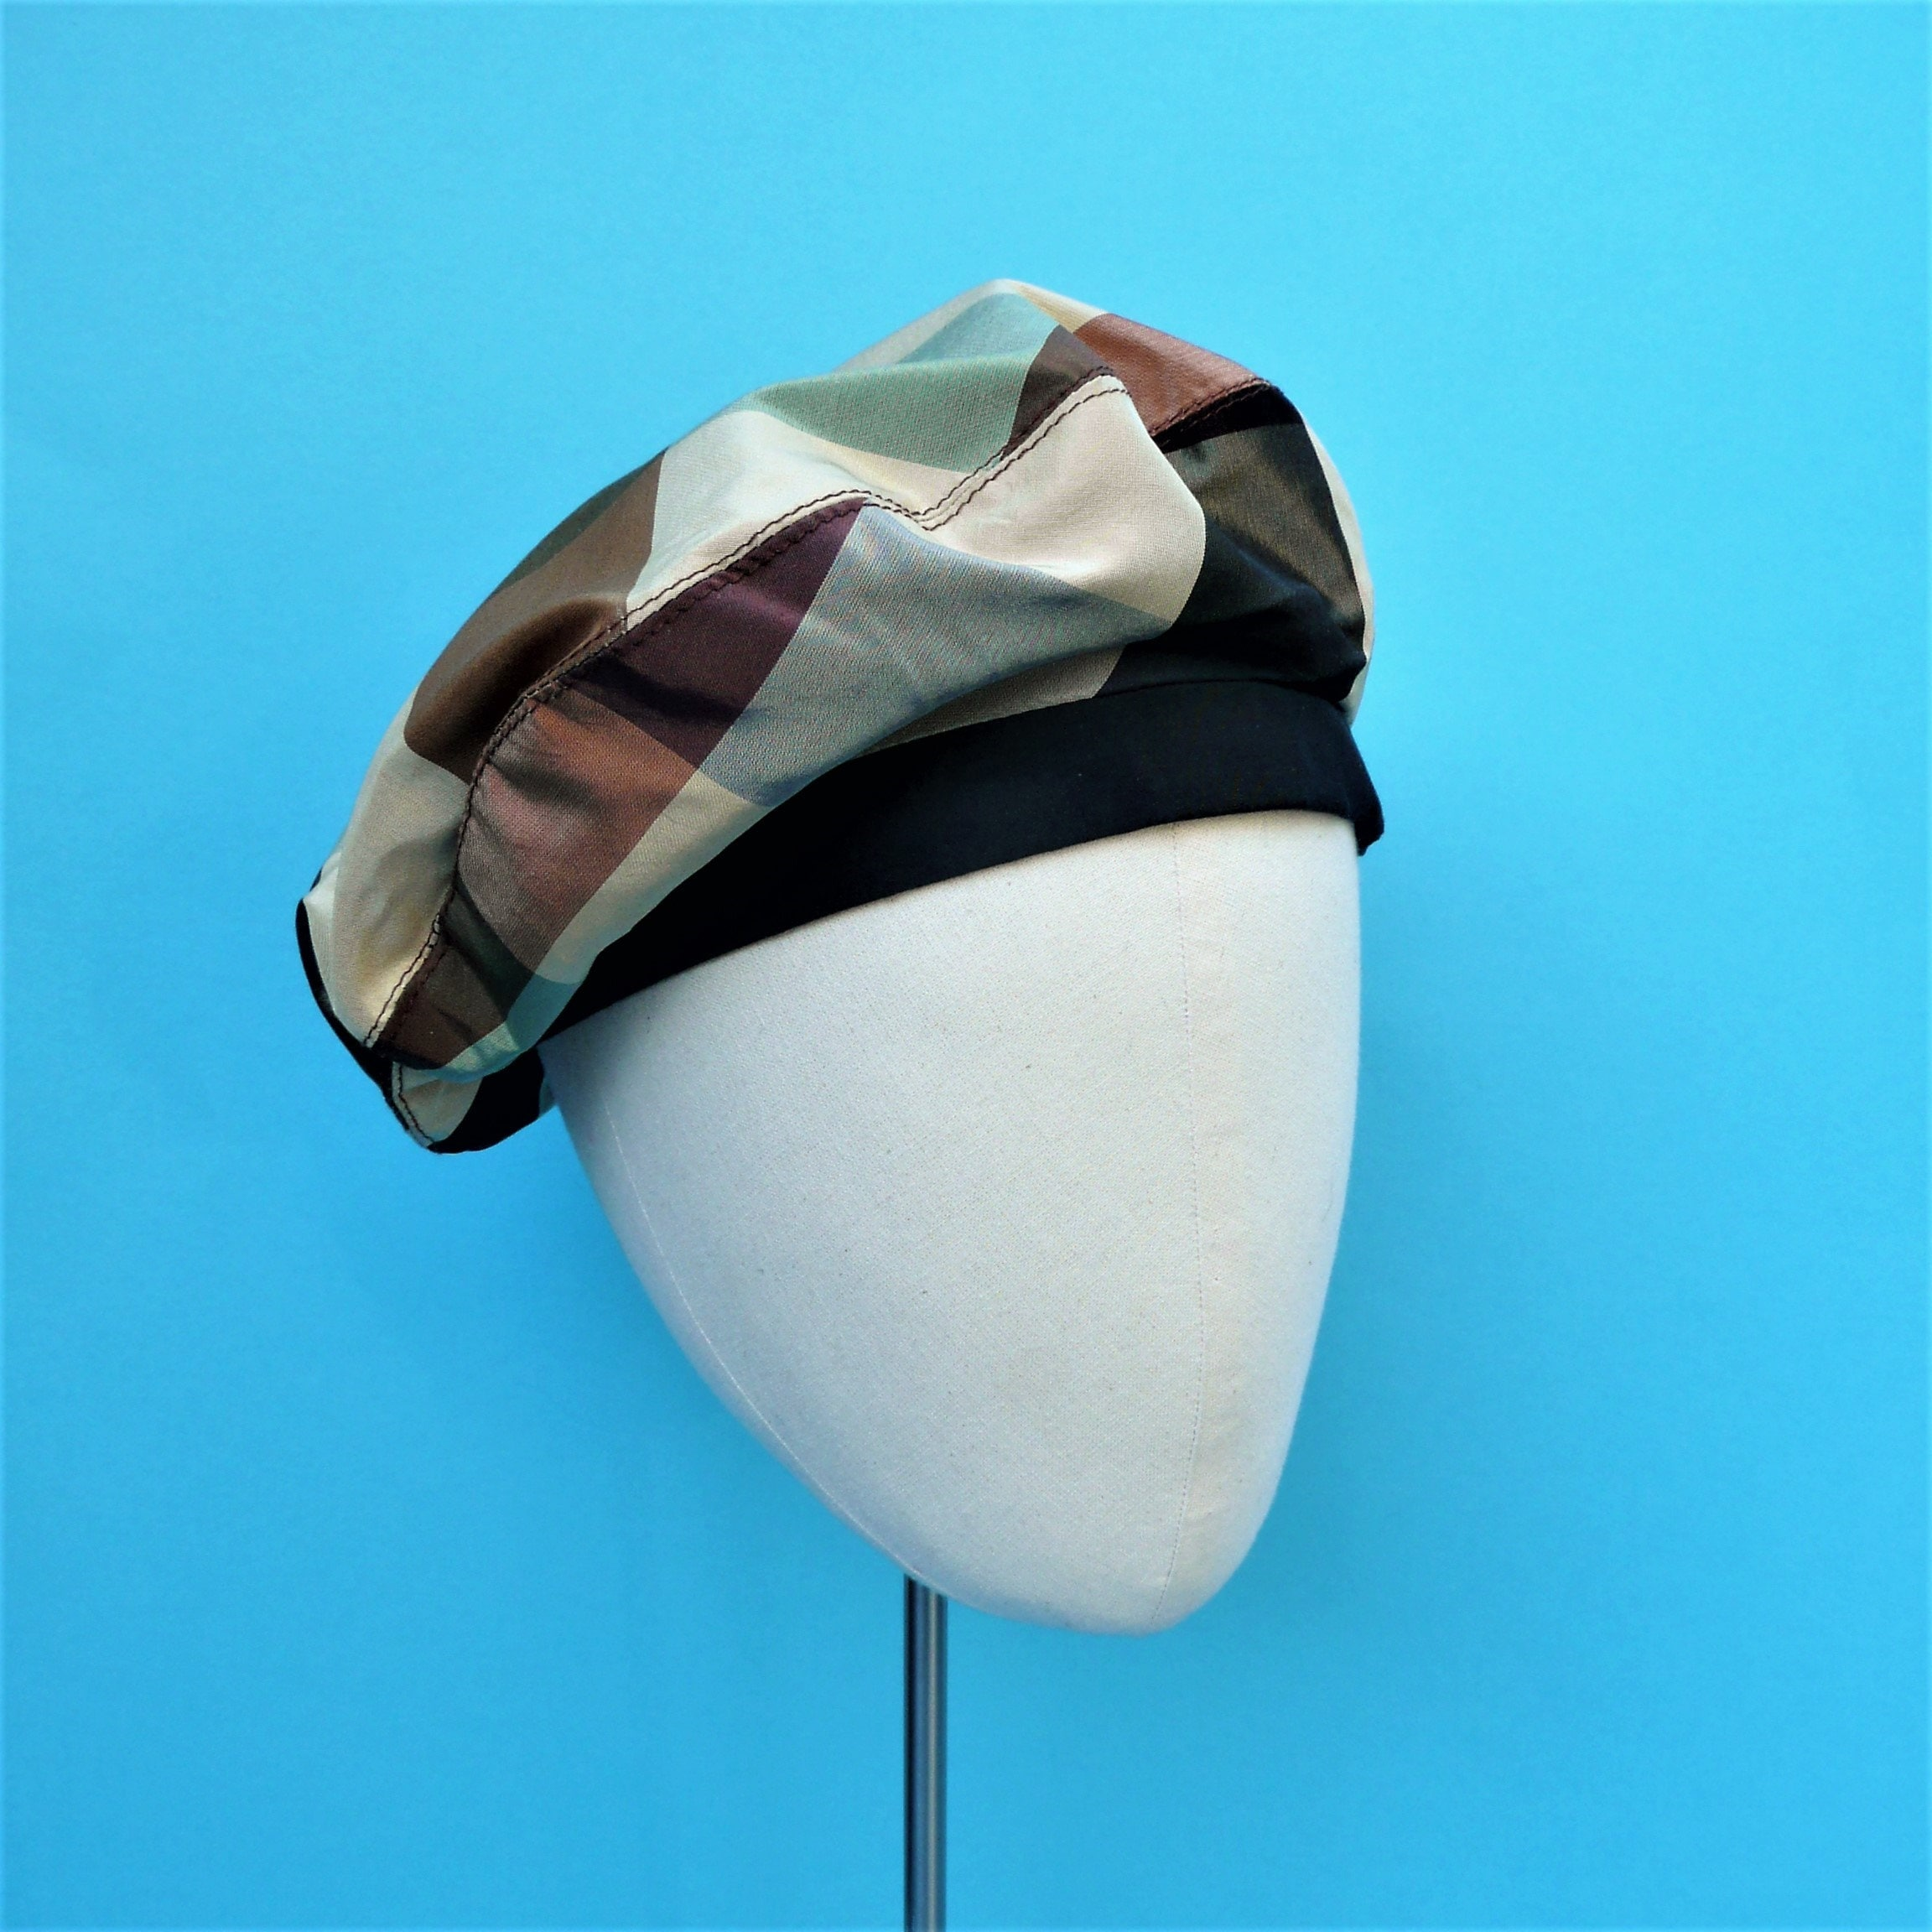 bb0563475 Coco Chanel Style Beret // Sailor Beret // Vintage Style French Beret //  Women's Beige Check Shot Silk Hat - SMALL